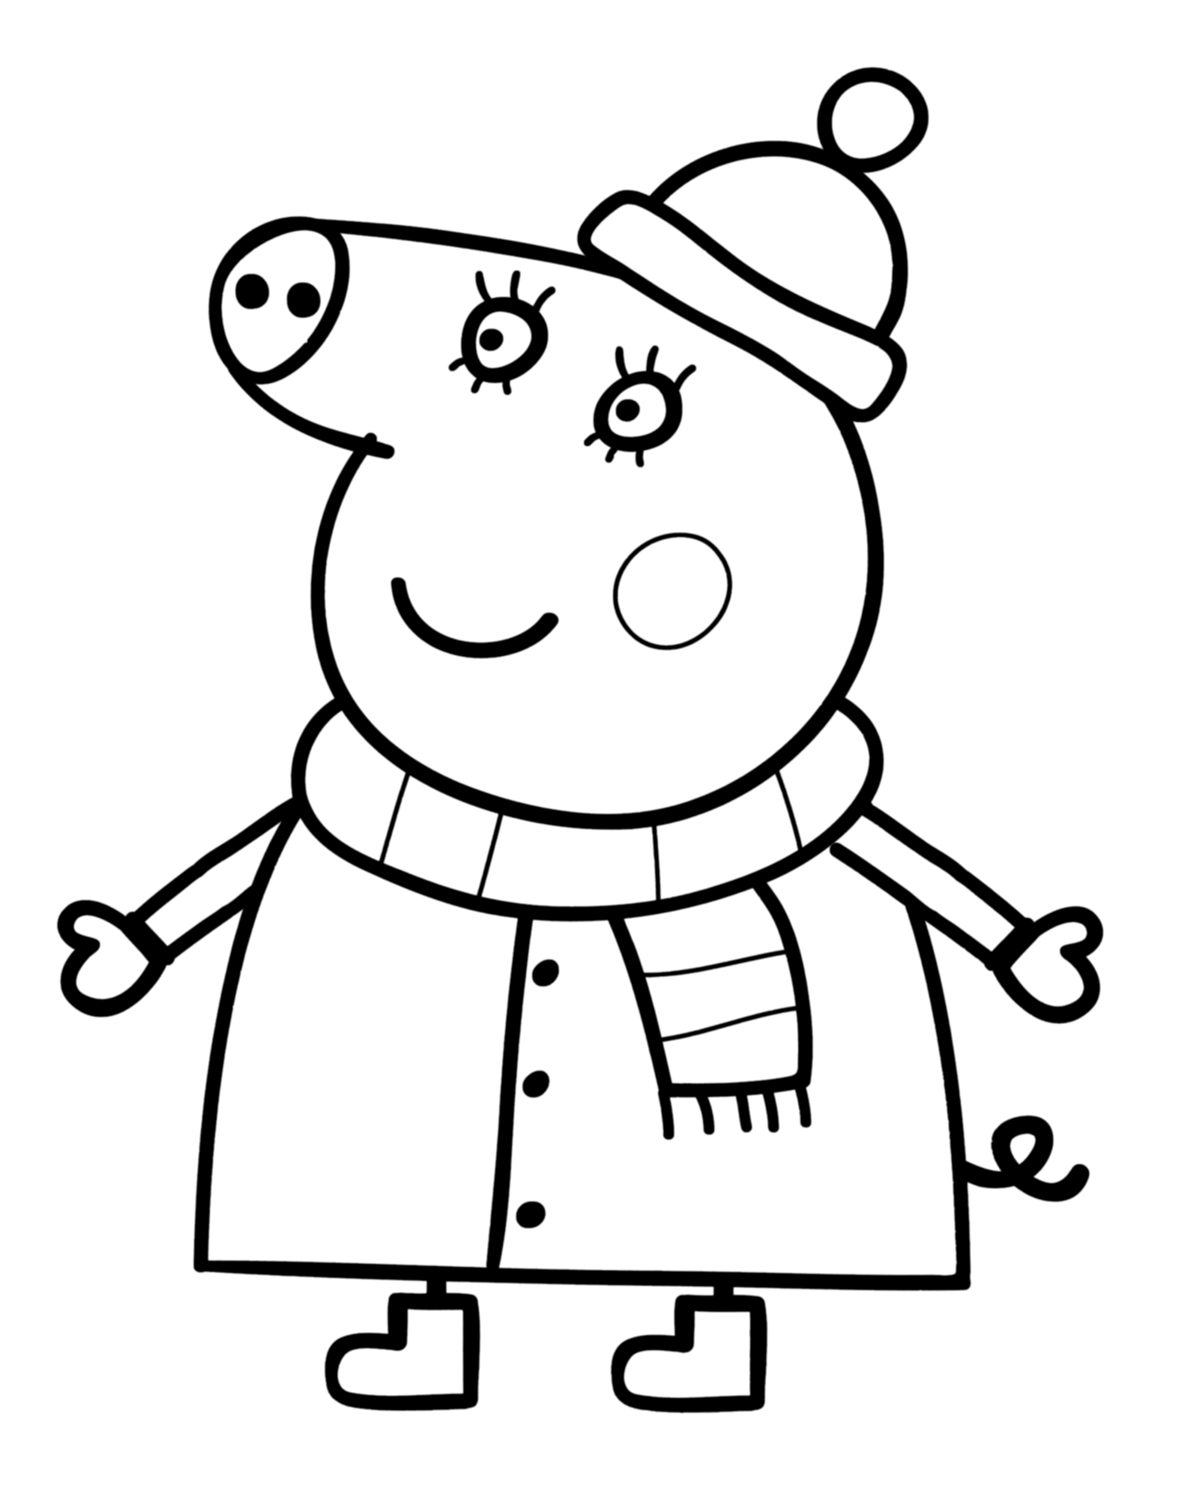 Pin by g orgina kincaid on coloriage p ppa pig pinterest - Coloriage peppa pig ...